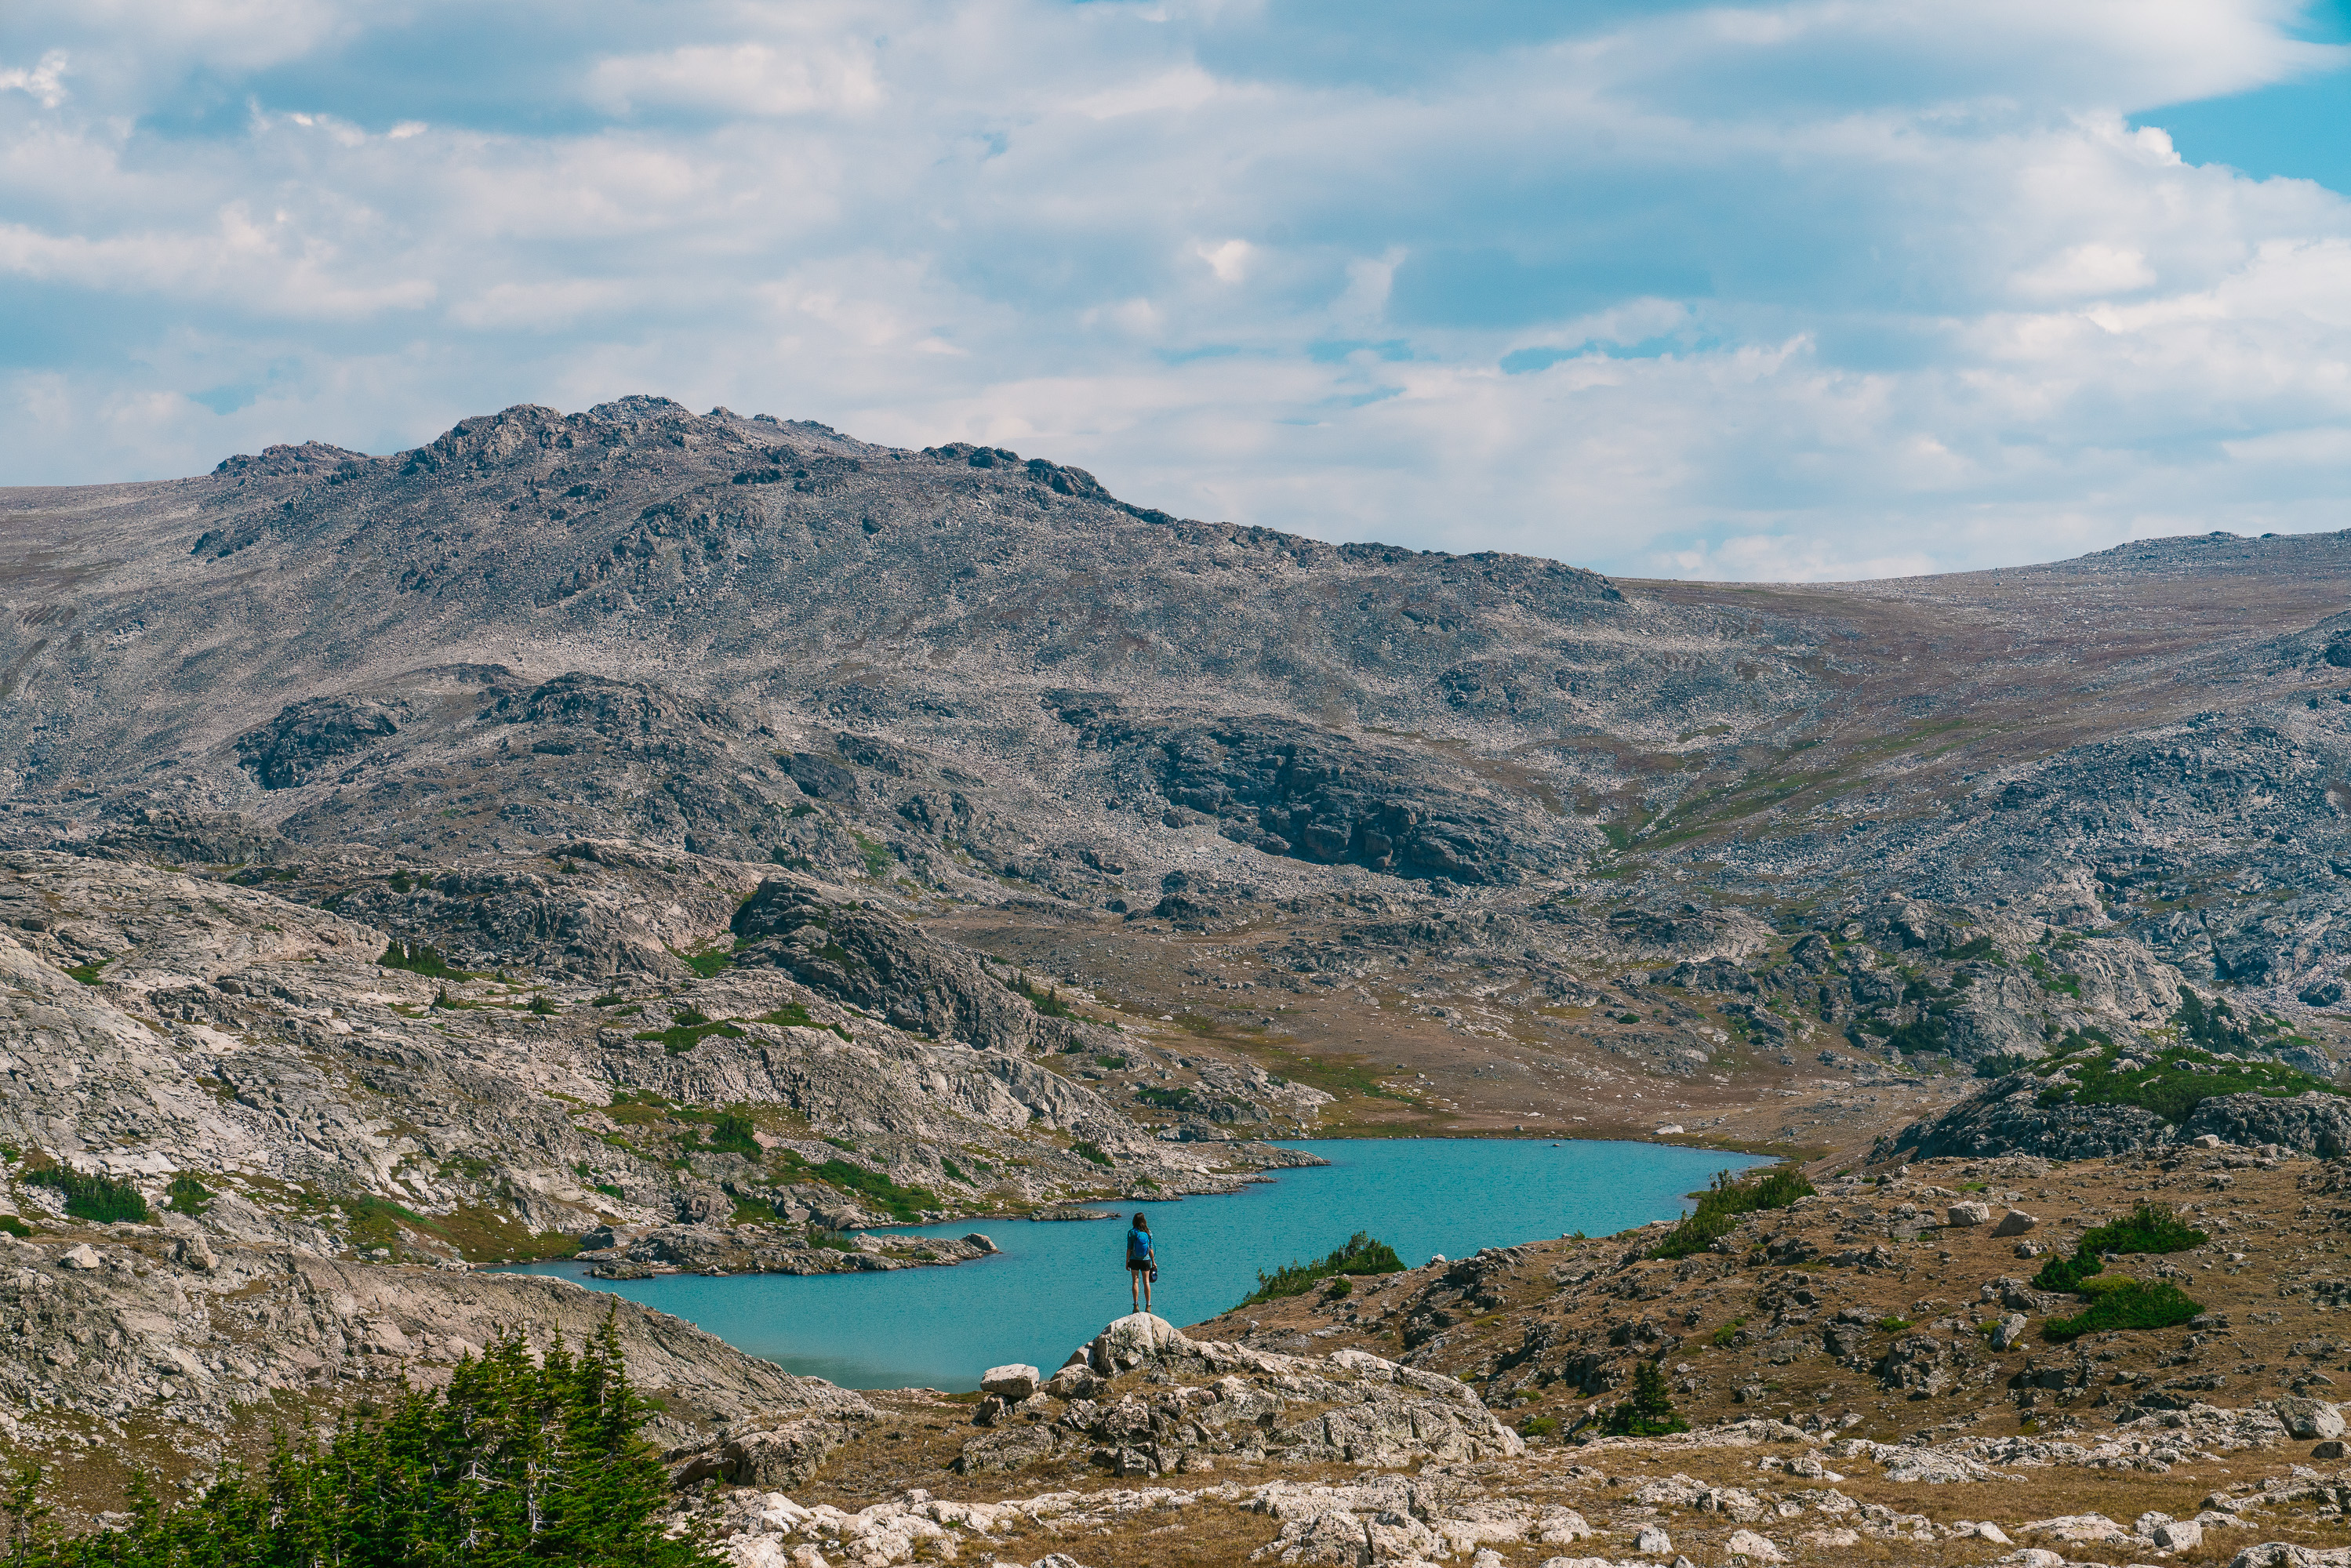 Photo of girl in wyoming mountain andcape with bright blue lake